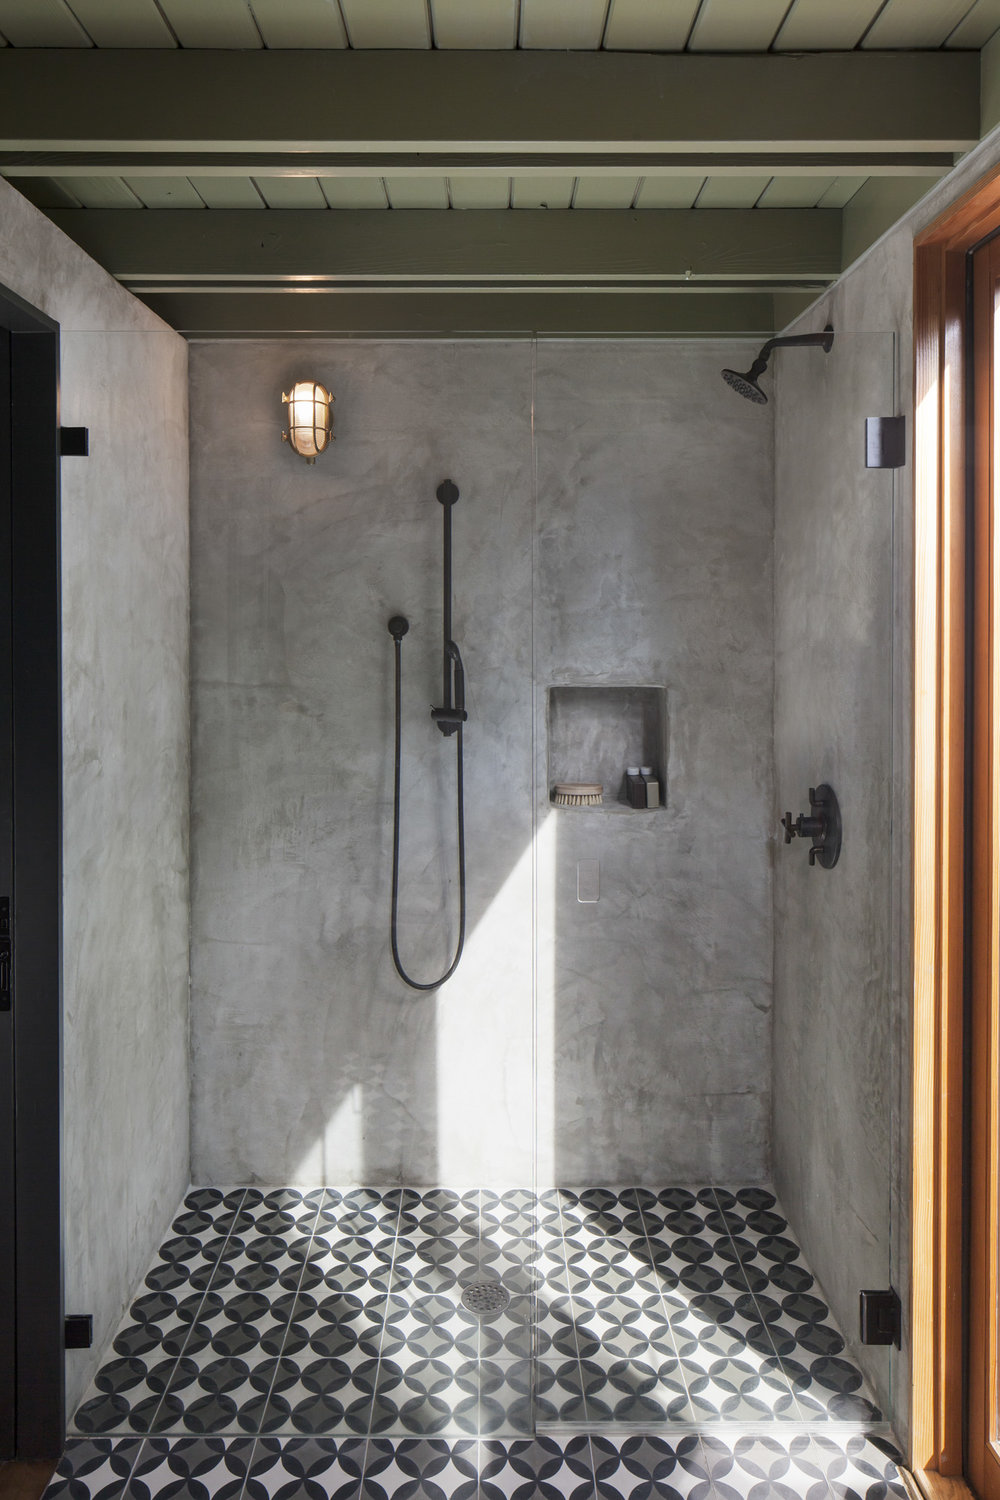 Elizabeth-Baird-Architecture-Garner Pool and Casita- casita bathroom shower.jpg